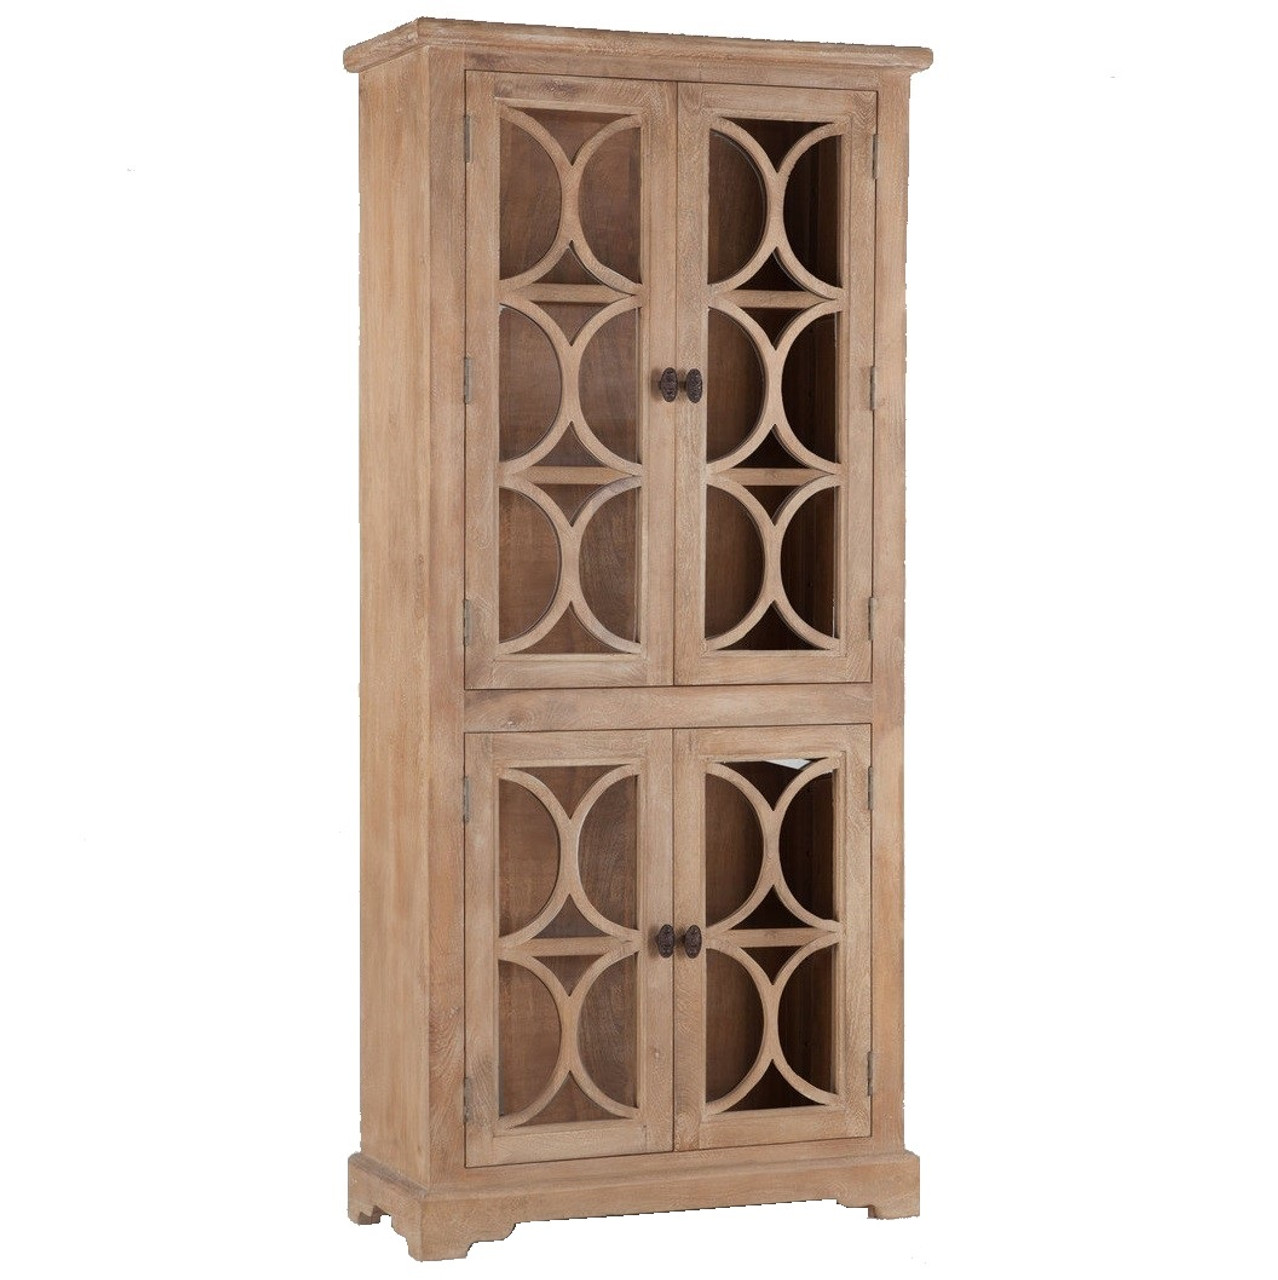 Merveilleux French Farmhouse Solid Wood 2 Door Display Cabinet